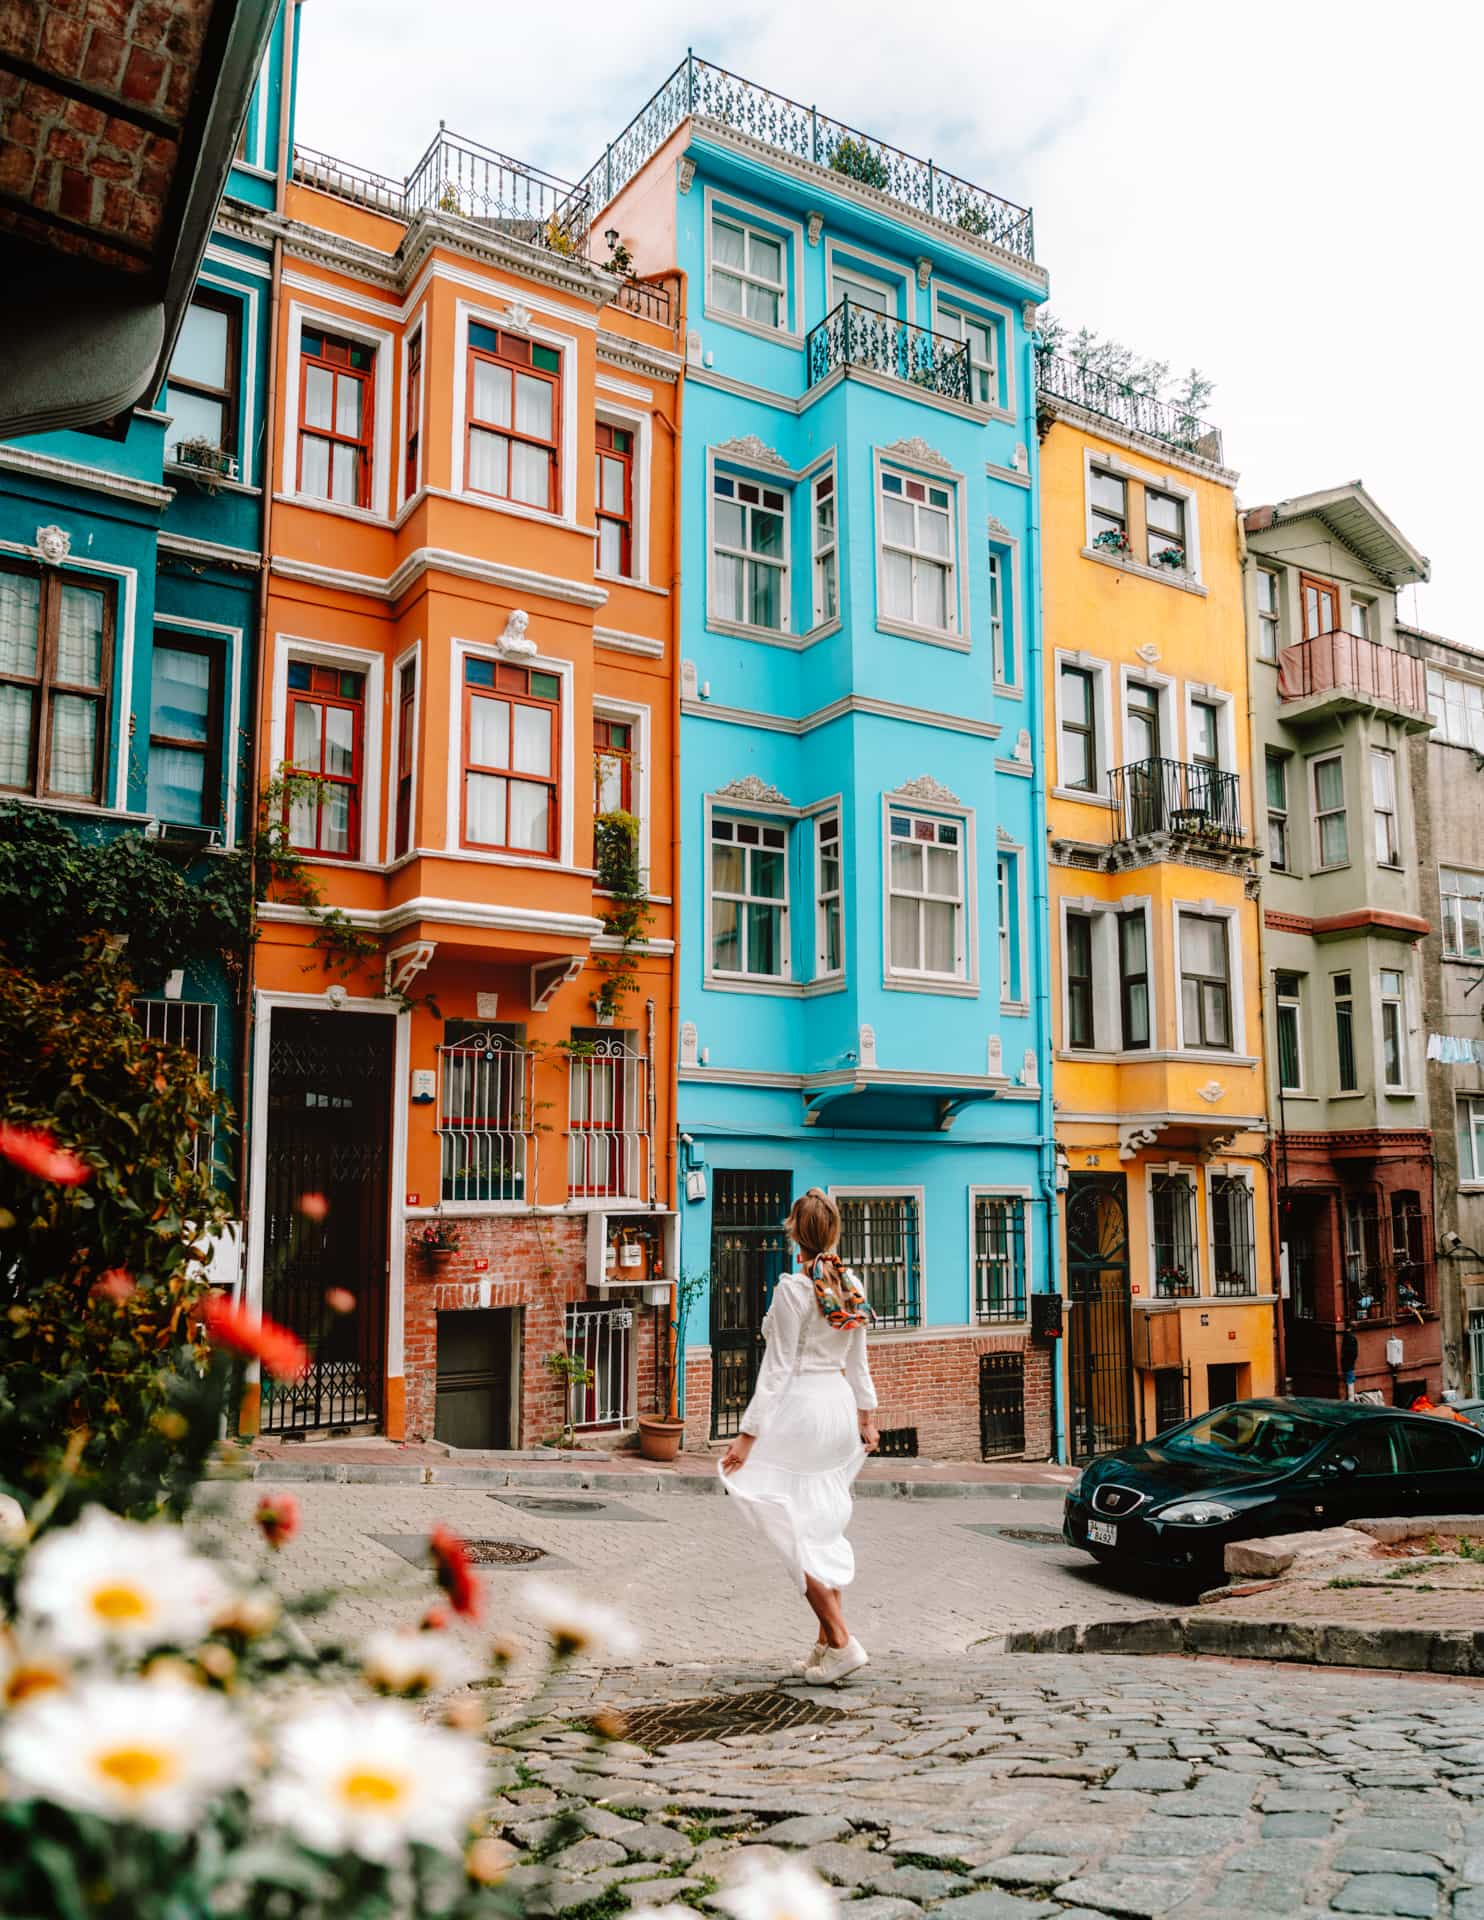 ISTANBUL BALAT - Must-see Colorful Houses in Istanbul